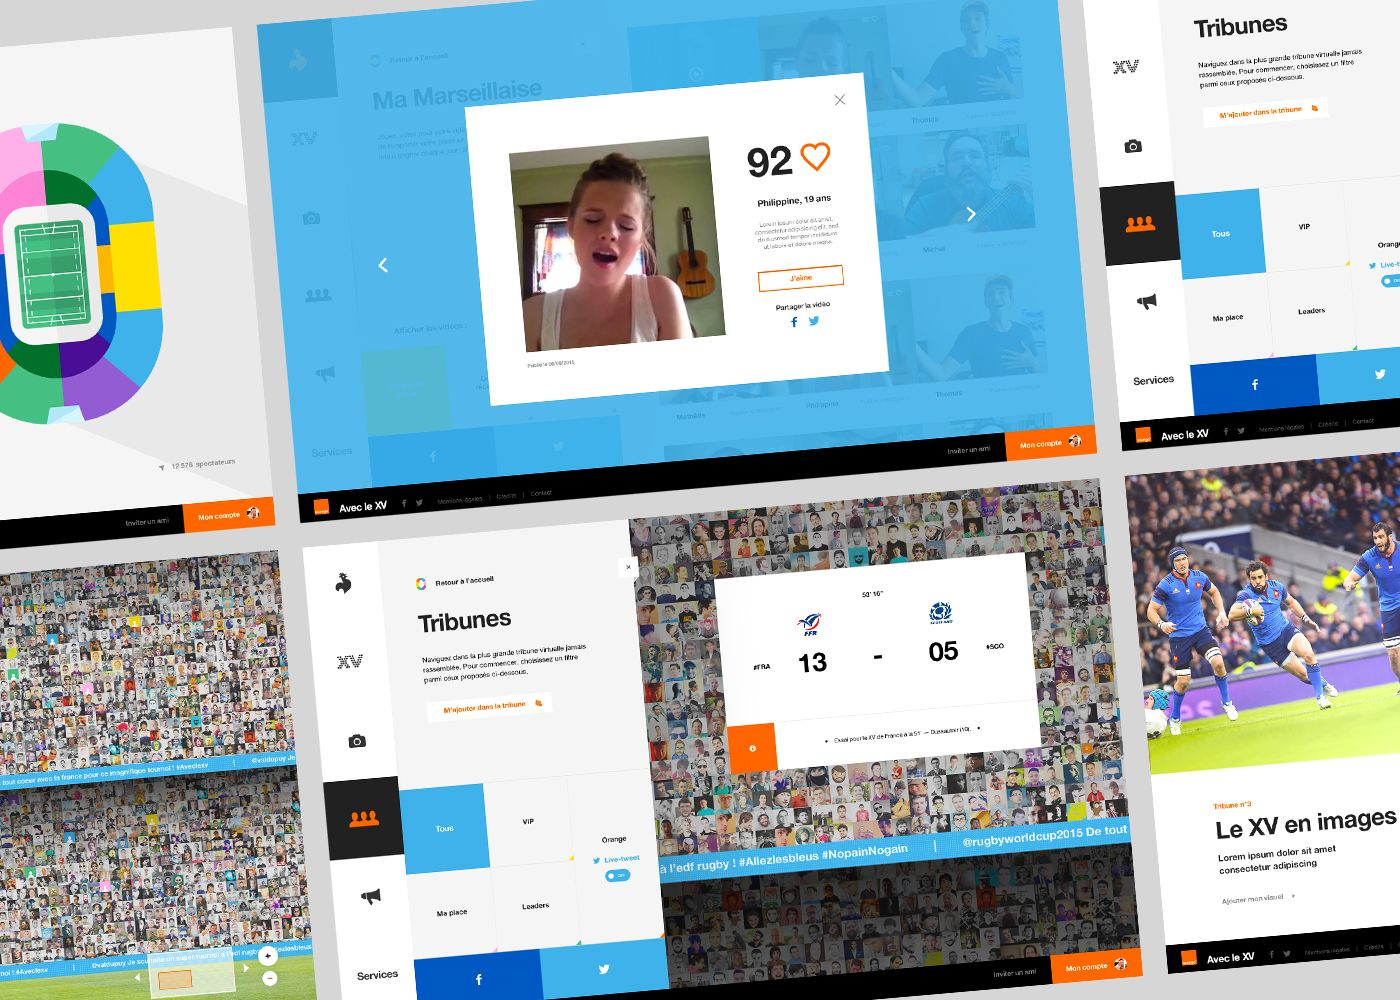 """""""La tribune des Bleus"""" is a digital campaign initiated by Orange™as a sponsor of the Rugby World Cup 2015. Enter a virtual stadium where you can live the entertainment of a real match and support your team."""